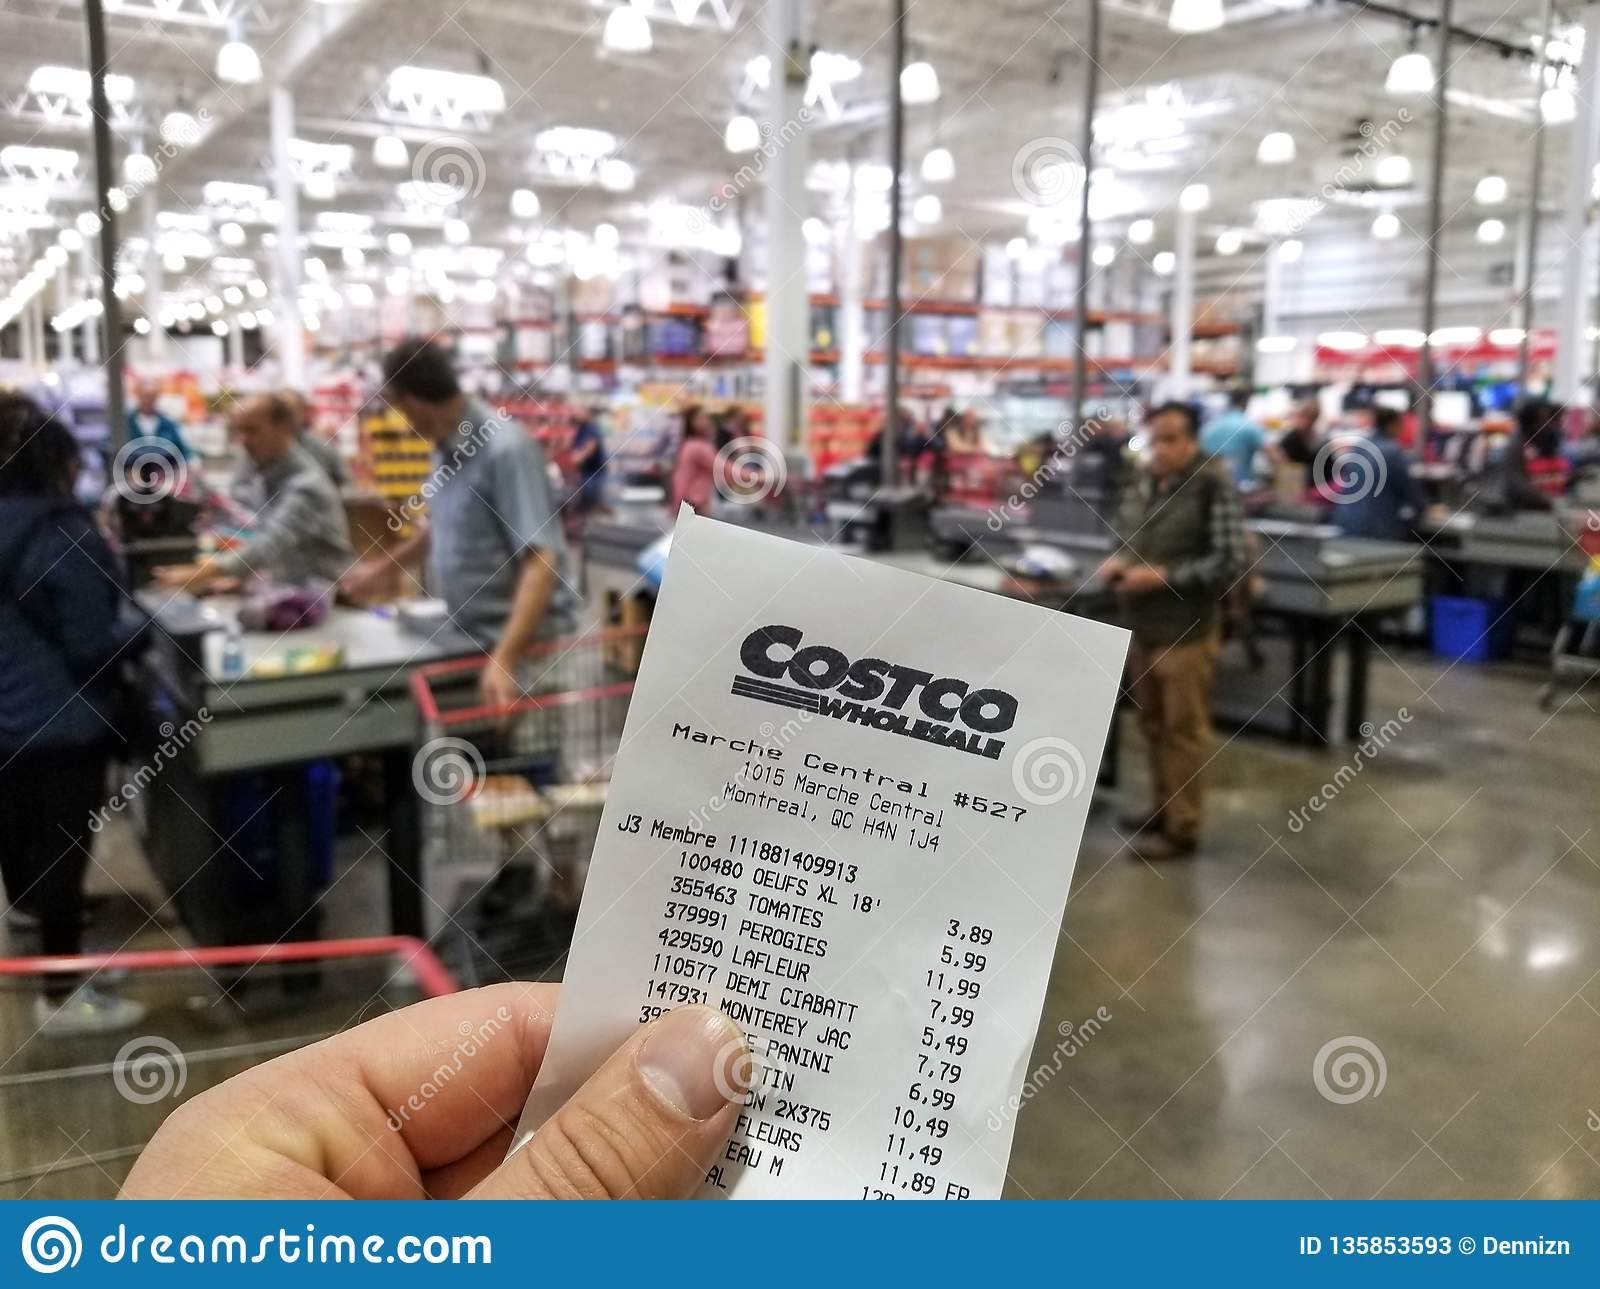 A Hand Holding Costco Receipt Editorial Stock Photo - Image of